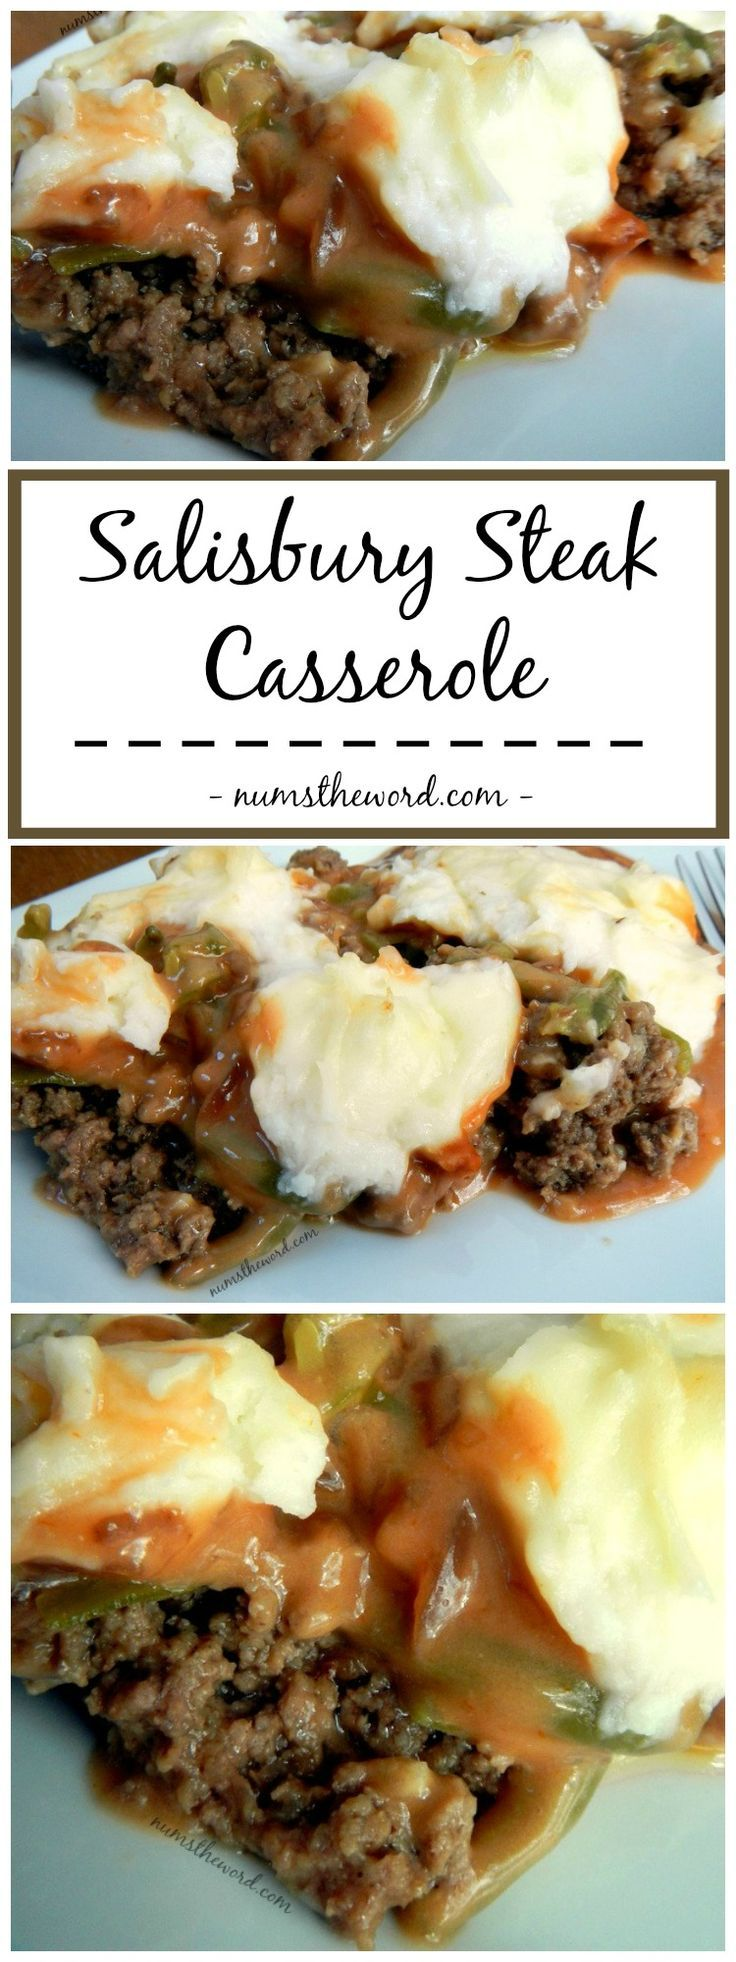 If you love Salisbury Steak, then give this simple 30 minute meal a chance. Easy, delicious and perfect weeknight meal! This also reheats and freezes well! #salisburysteak #easycasserole #30minutemeal